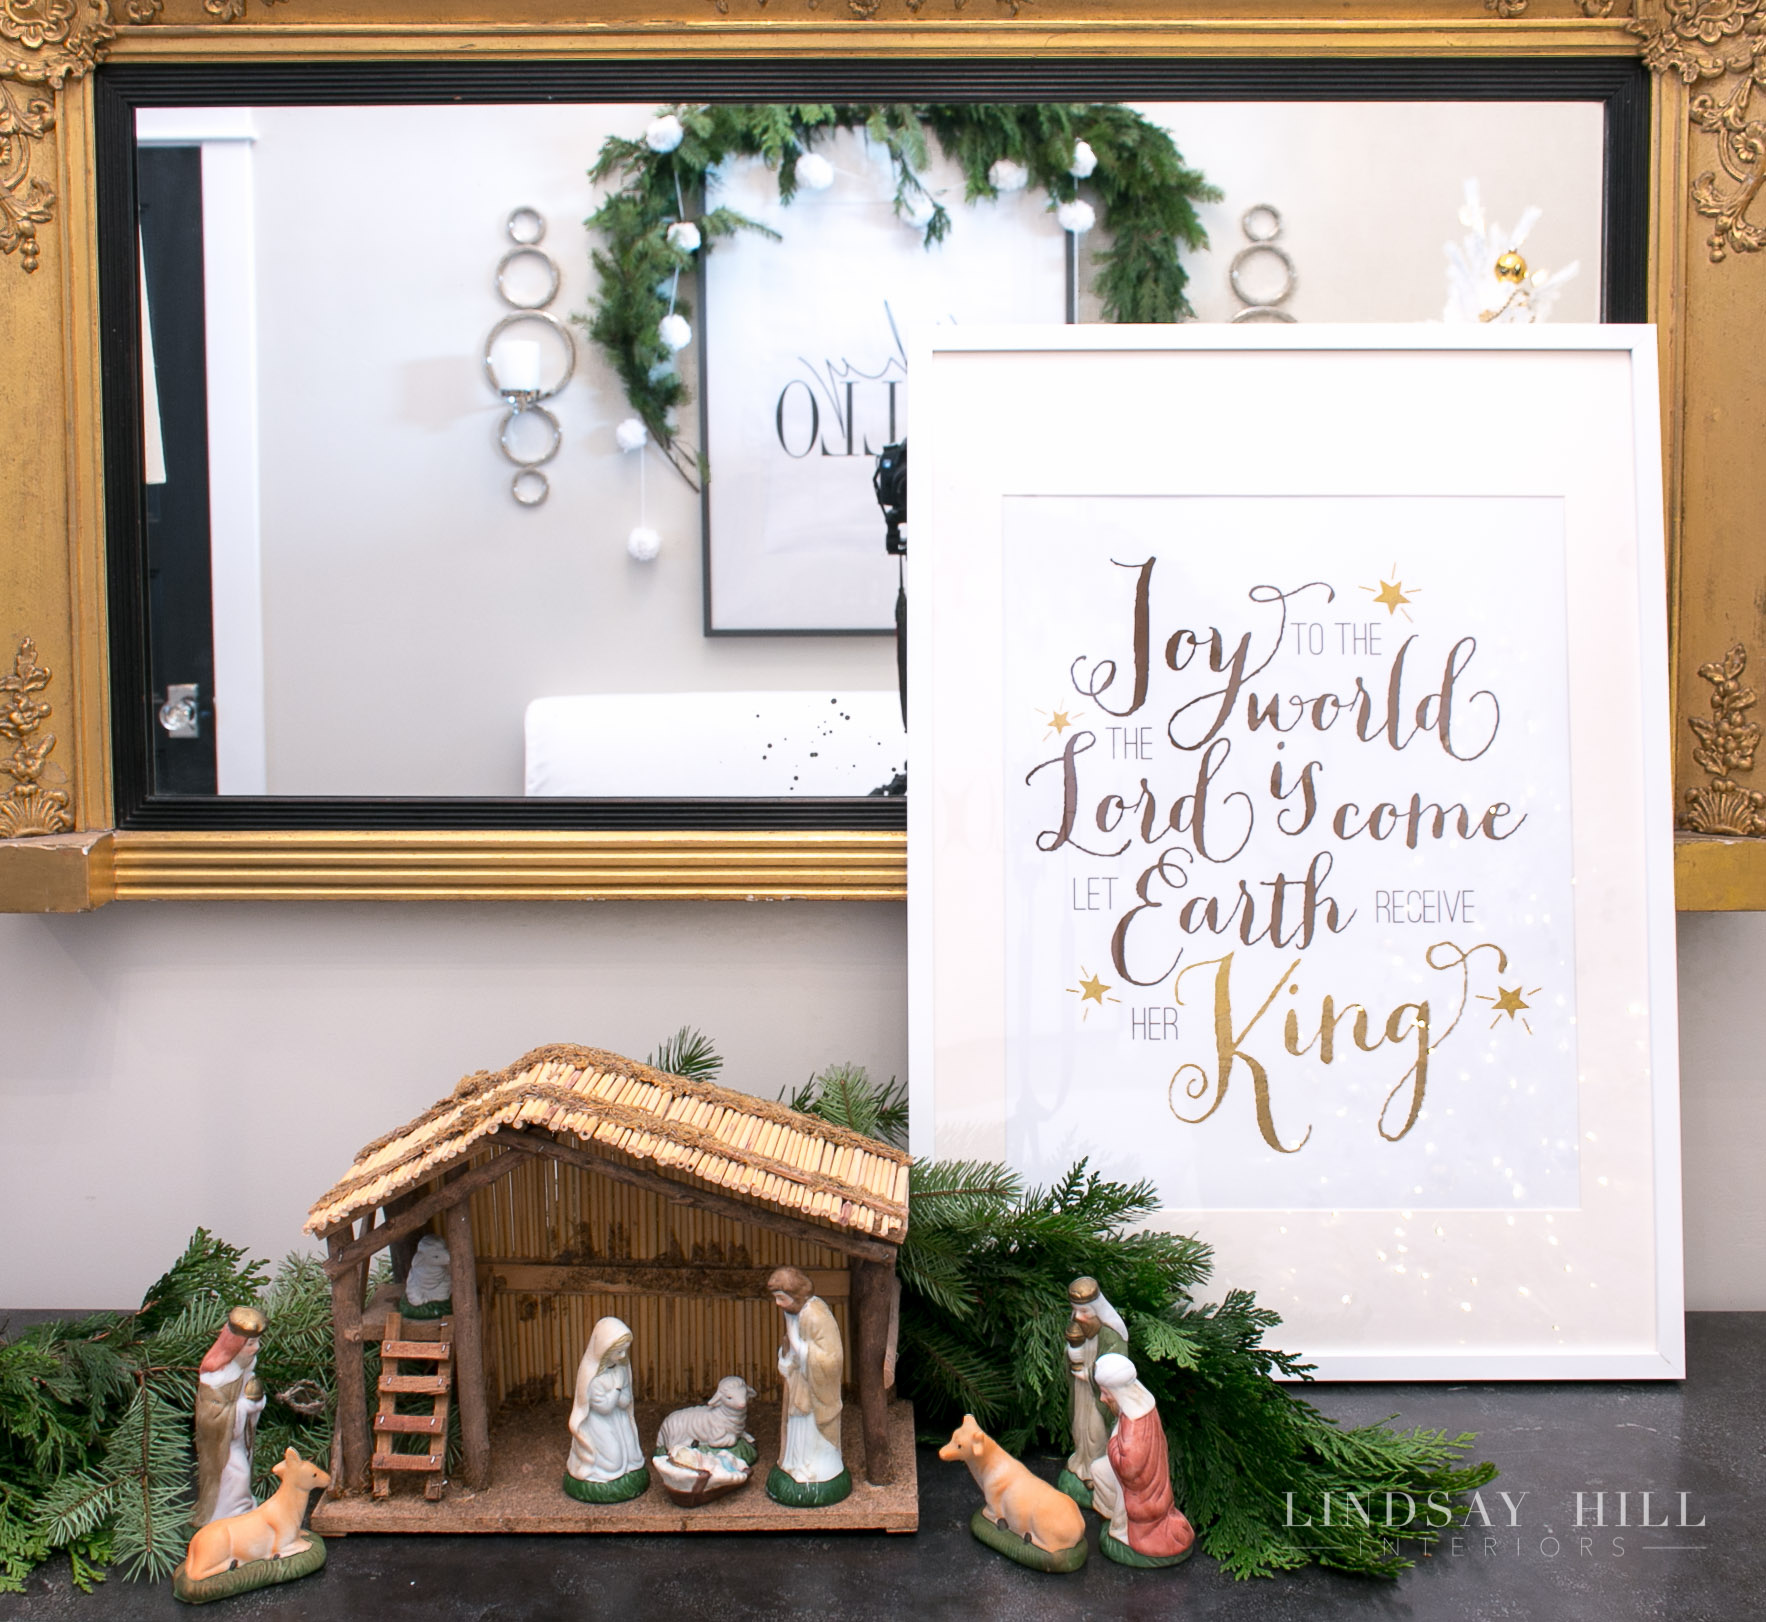 lindsay hill interiors nativity